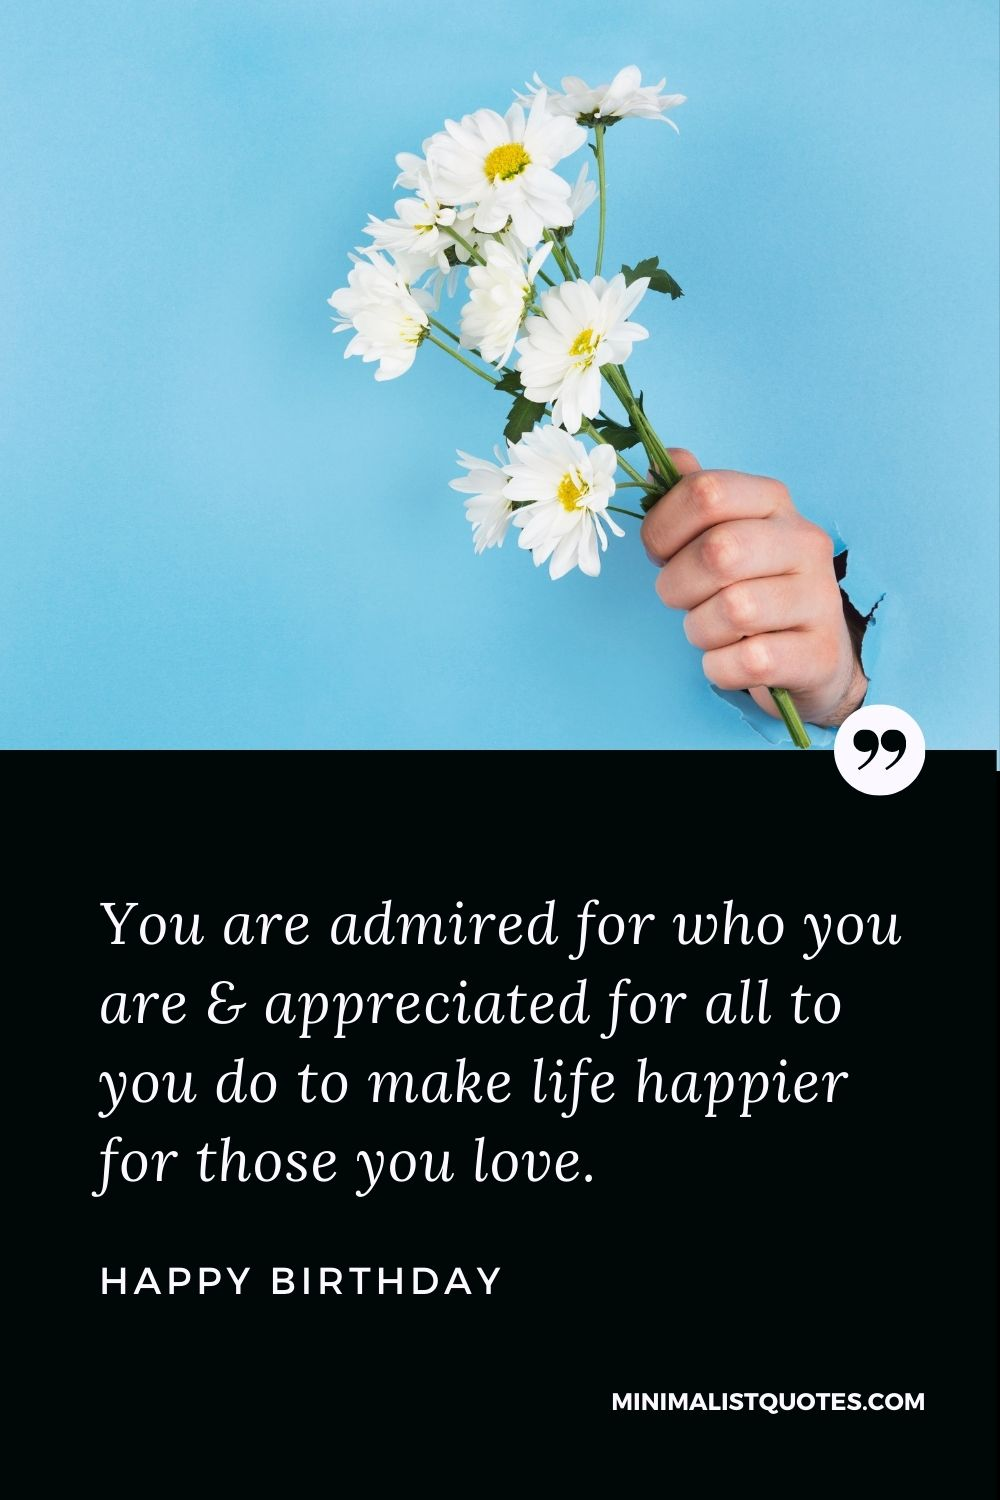 Happy Birthday Wish - You are admired for who you are & appreciated for all to you do to make life happier for those you love.